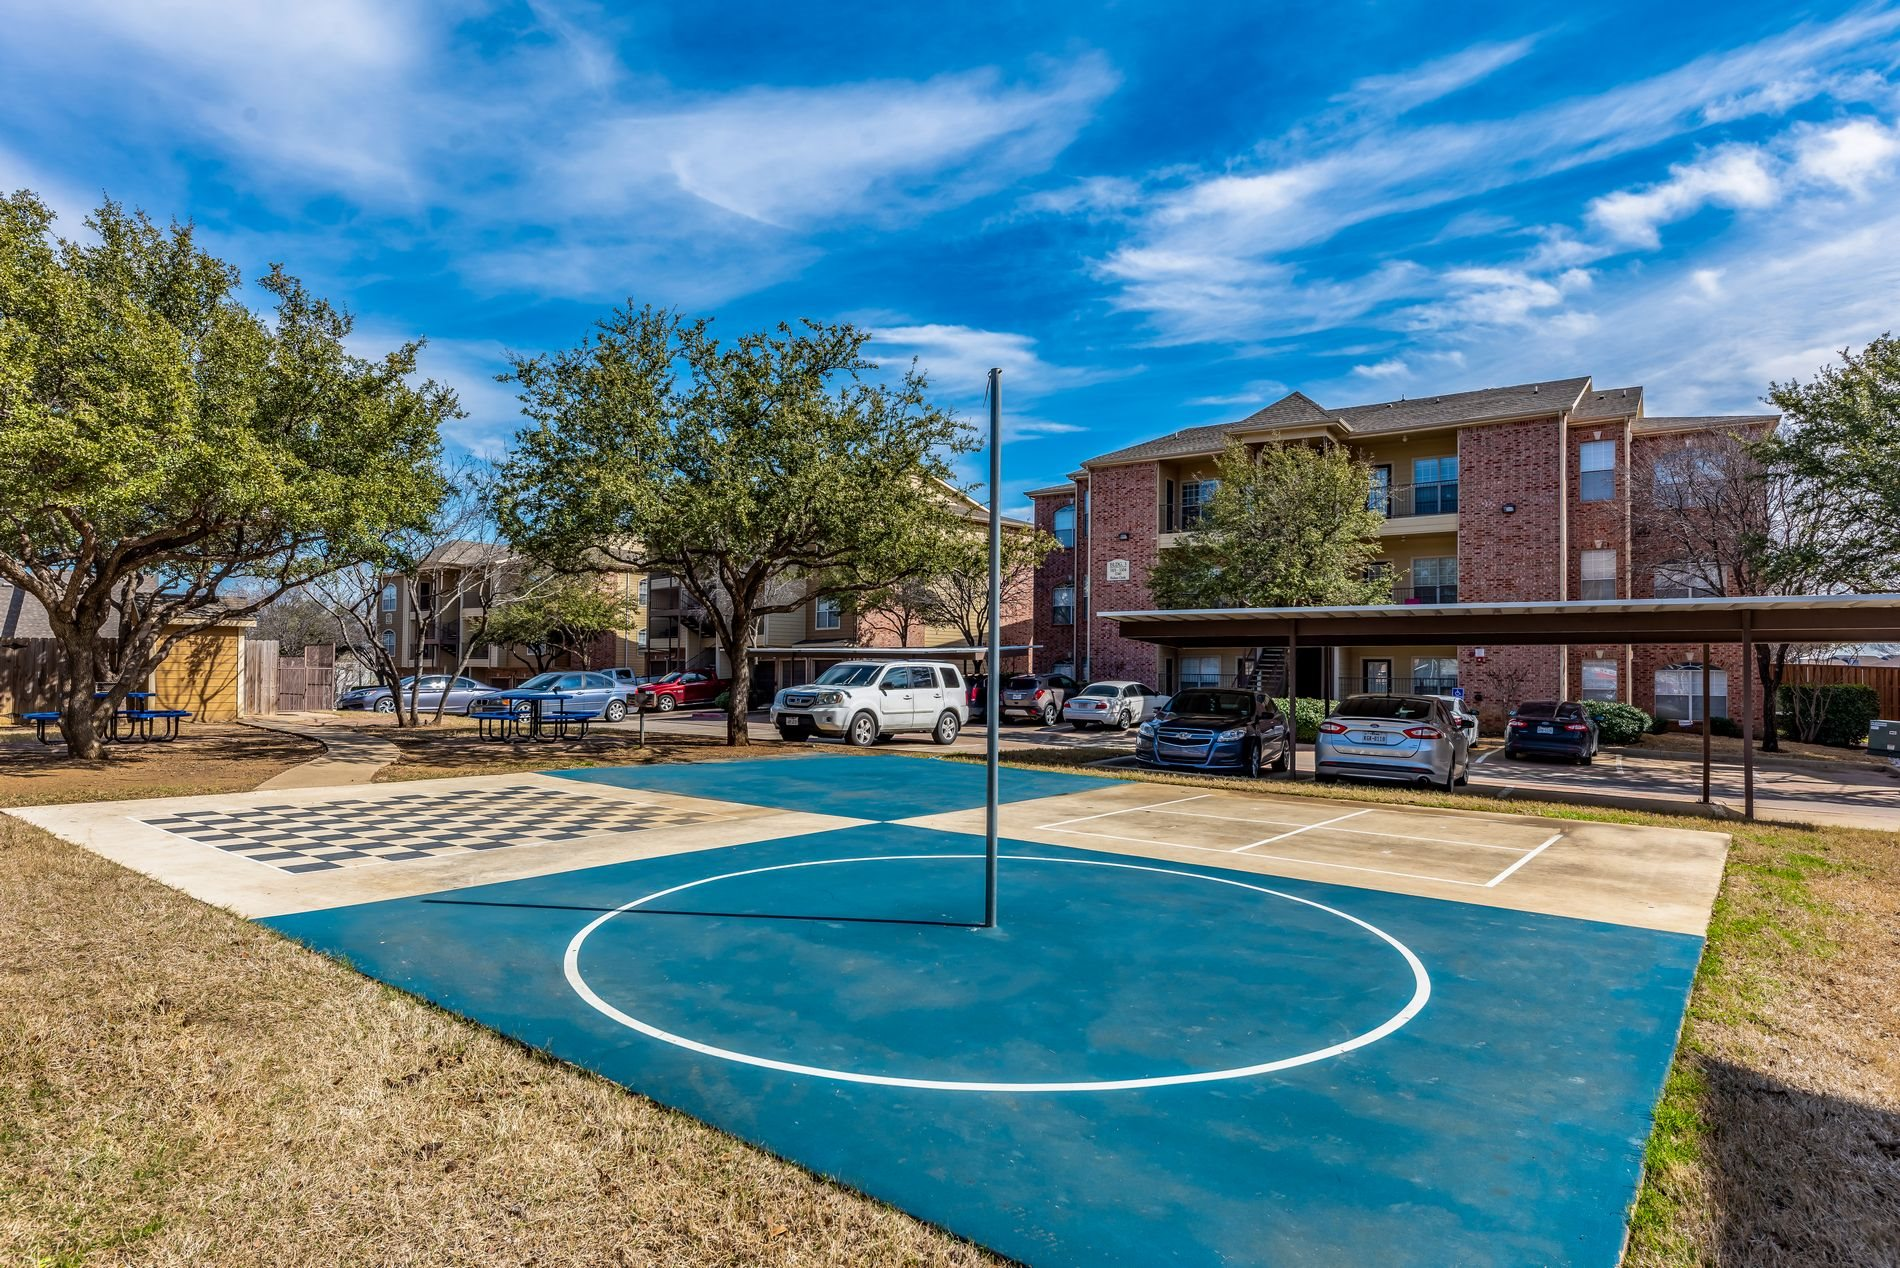 Euless Apartments for Rent at Station 3700 Apartment Homes in Euless, Texas